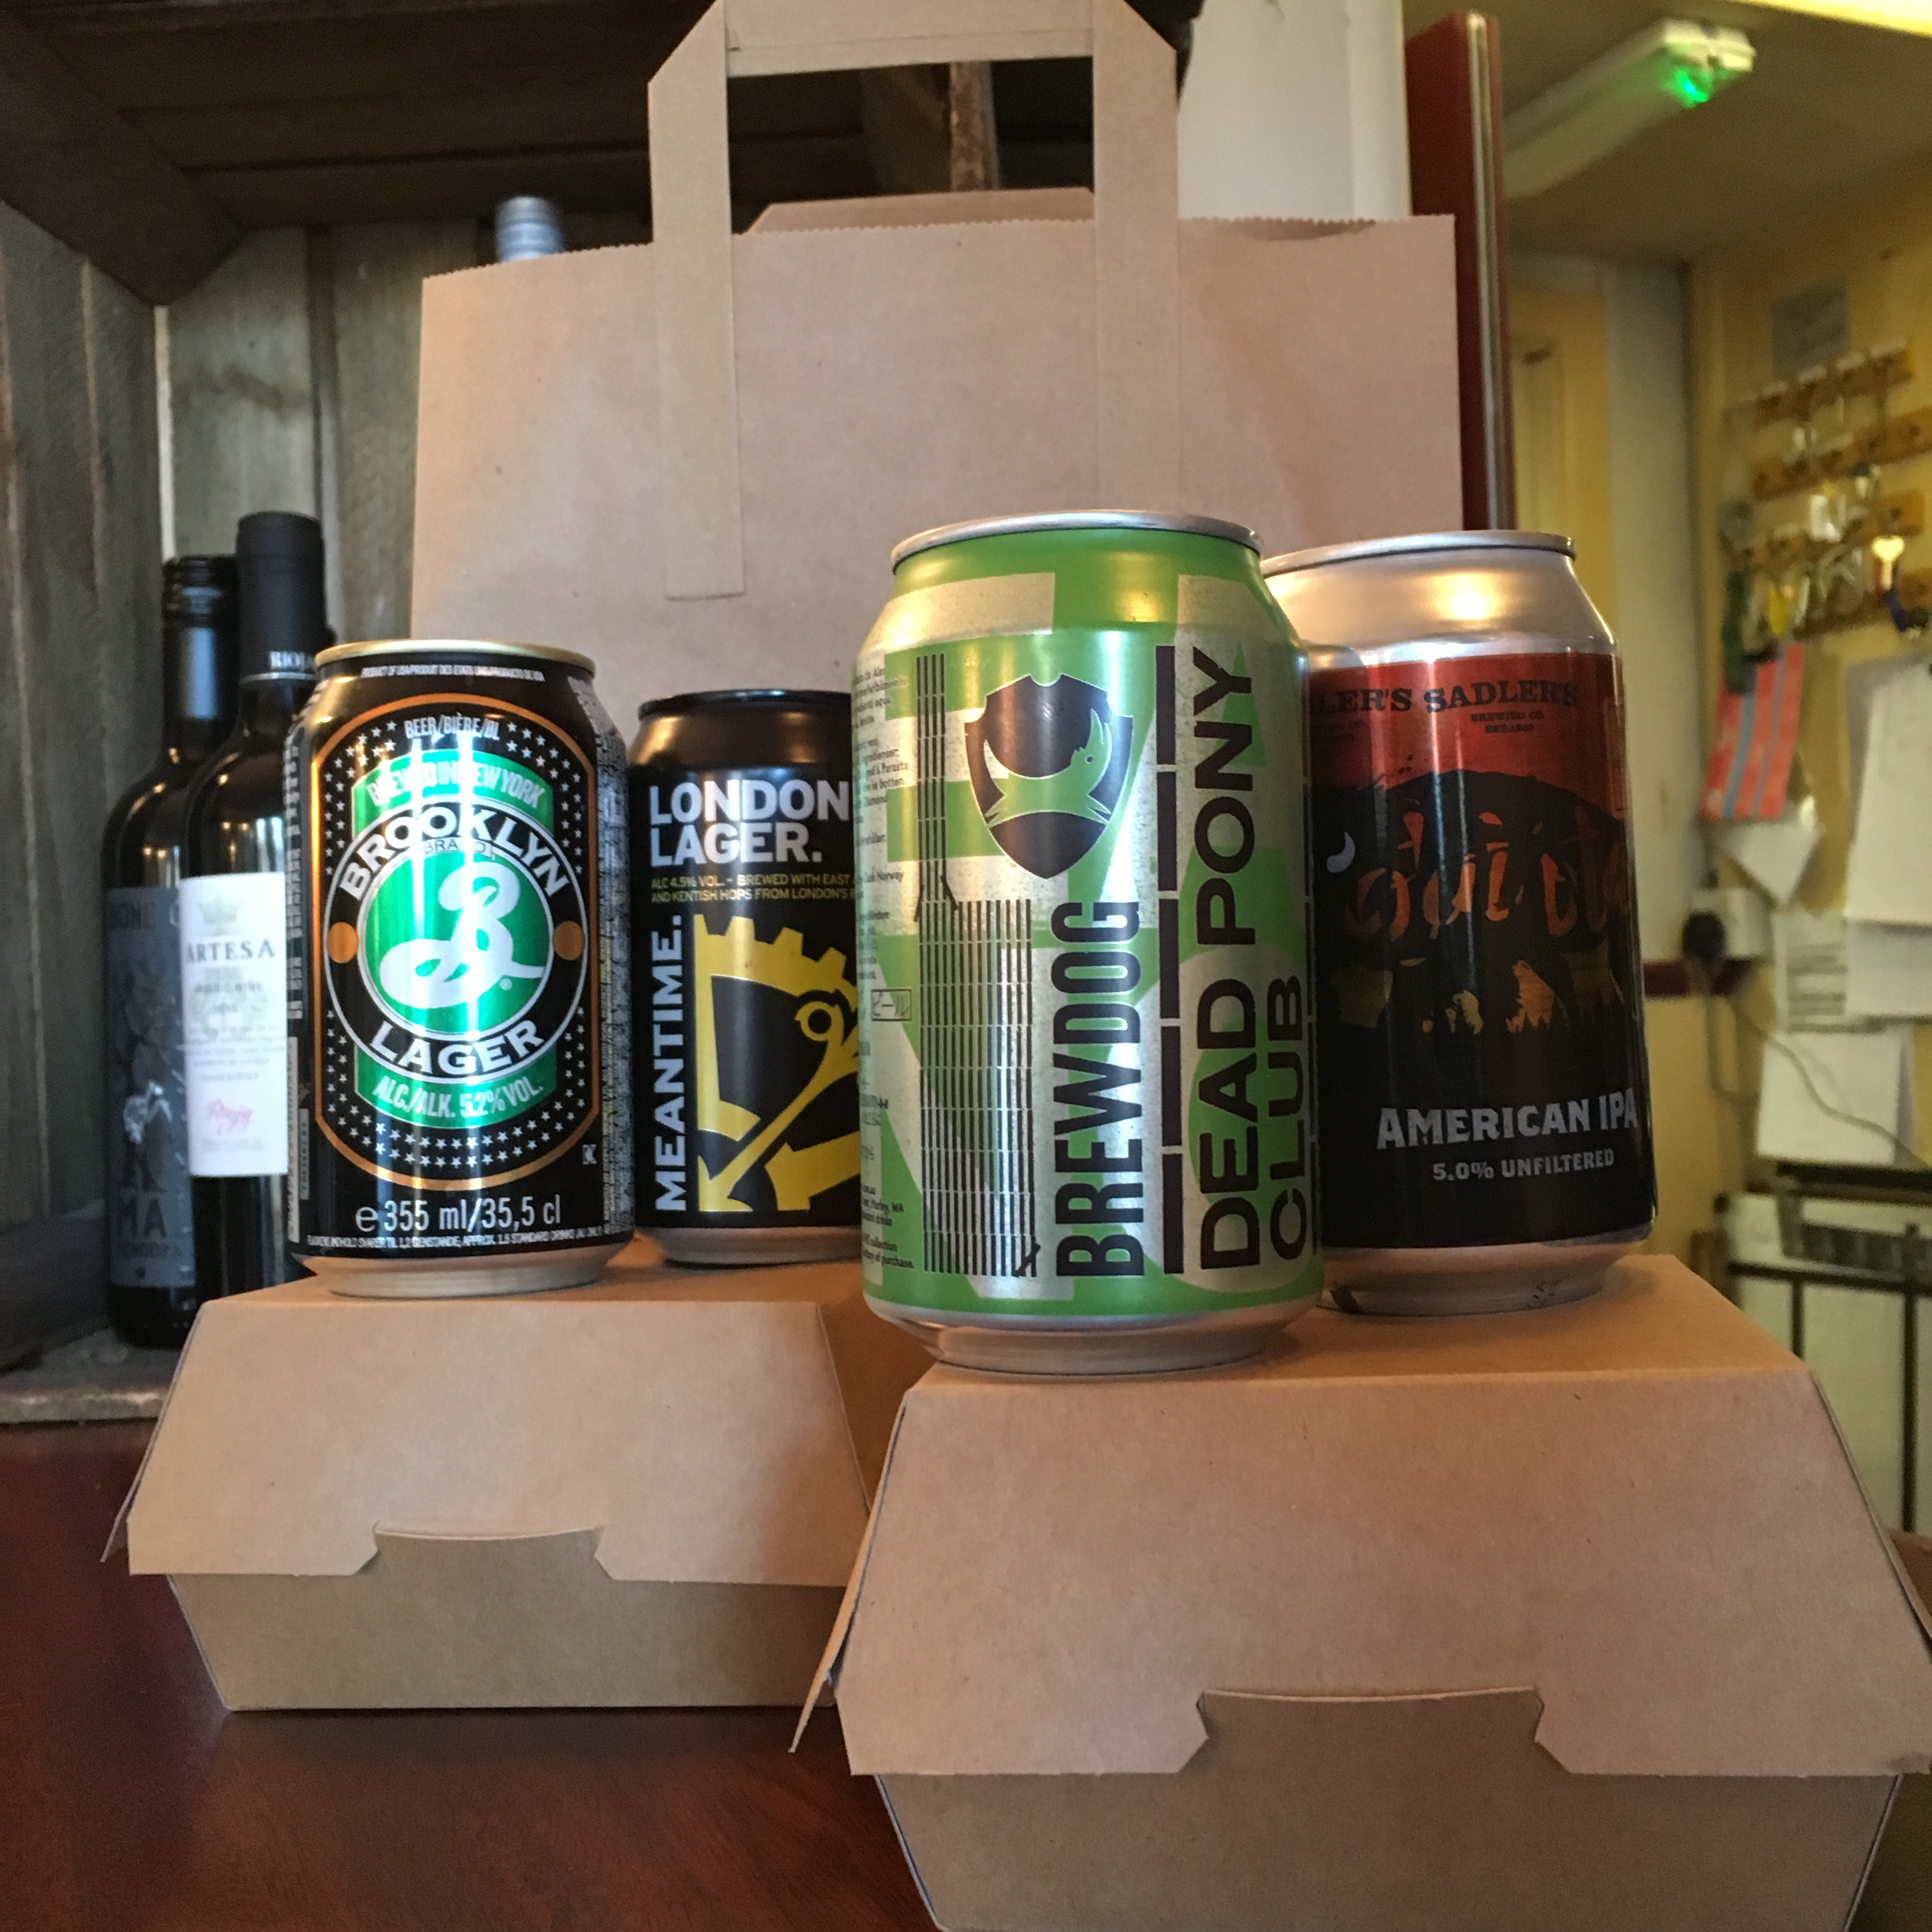 The Railway Ringwood Craft Beer and Bottle Shop to take away